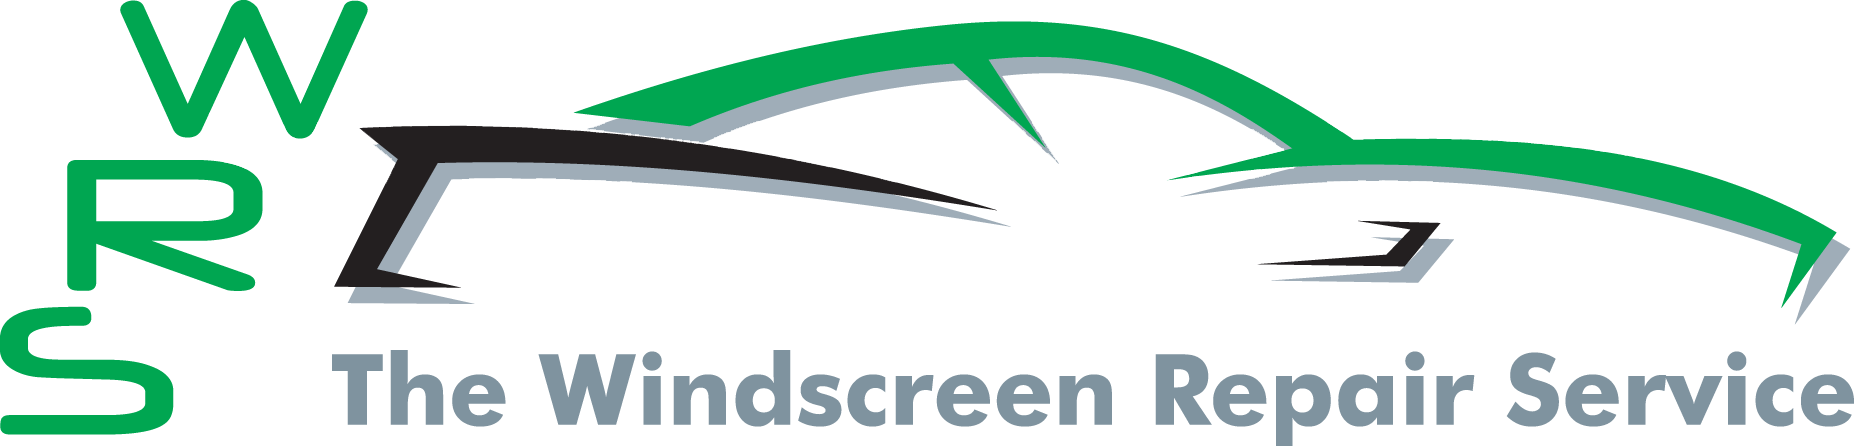 The Windscreen Repair Service